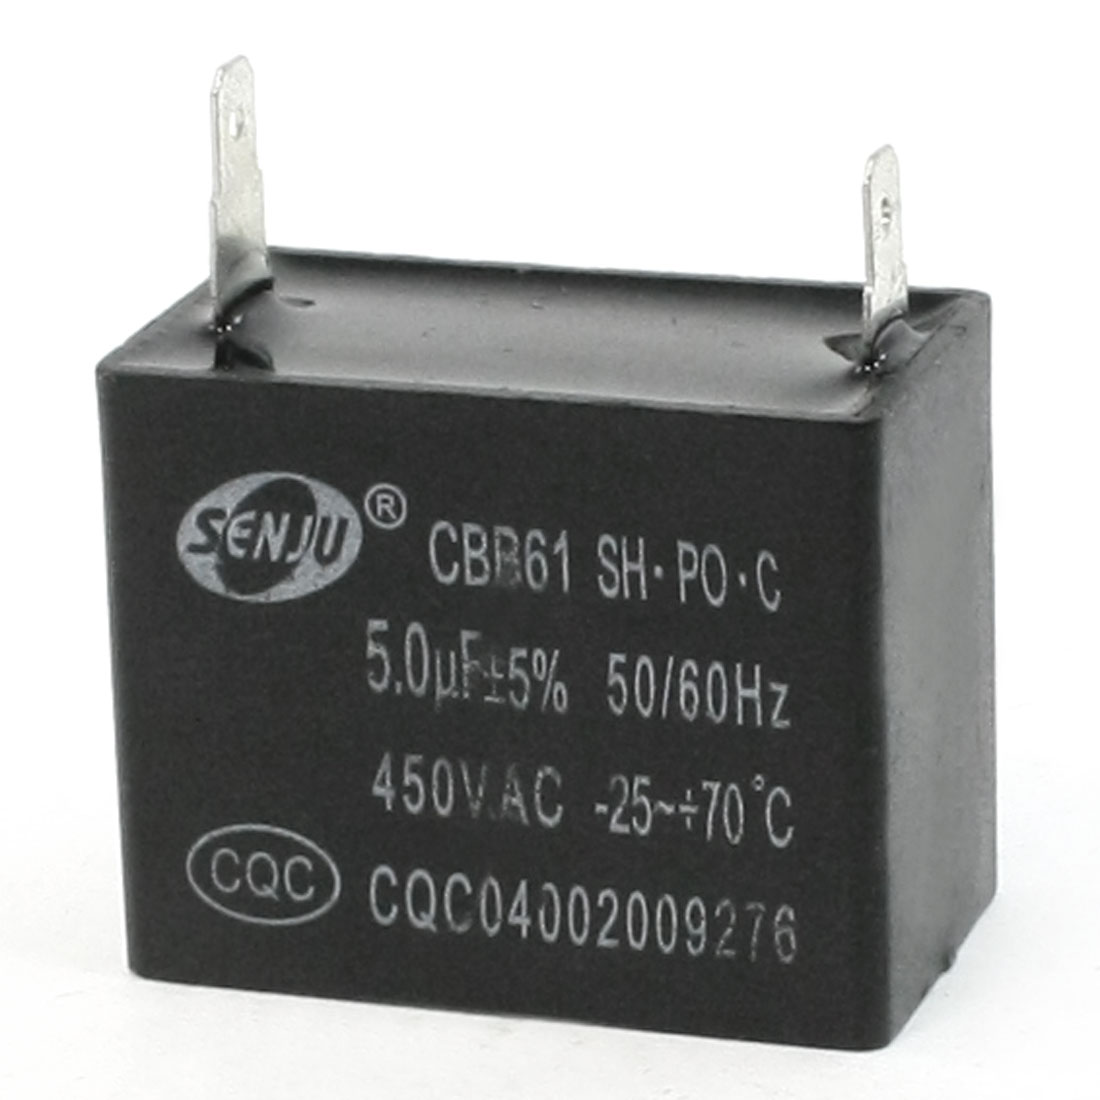 CBB61 5uF AC 450V 2-Terminal Rectangle Motor Capacitor 50/60Hz